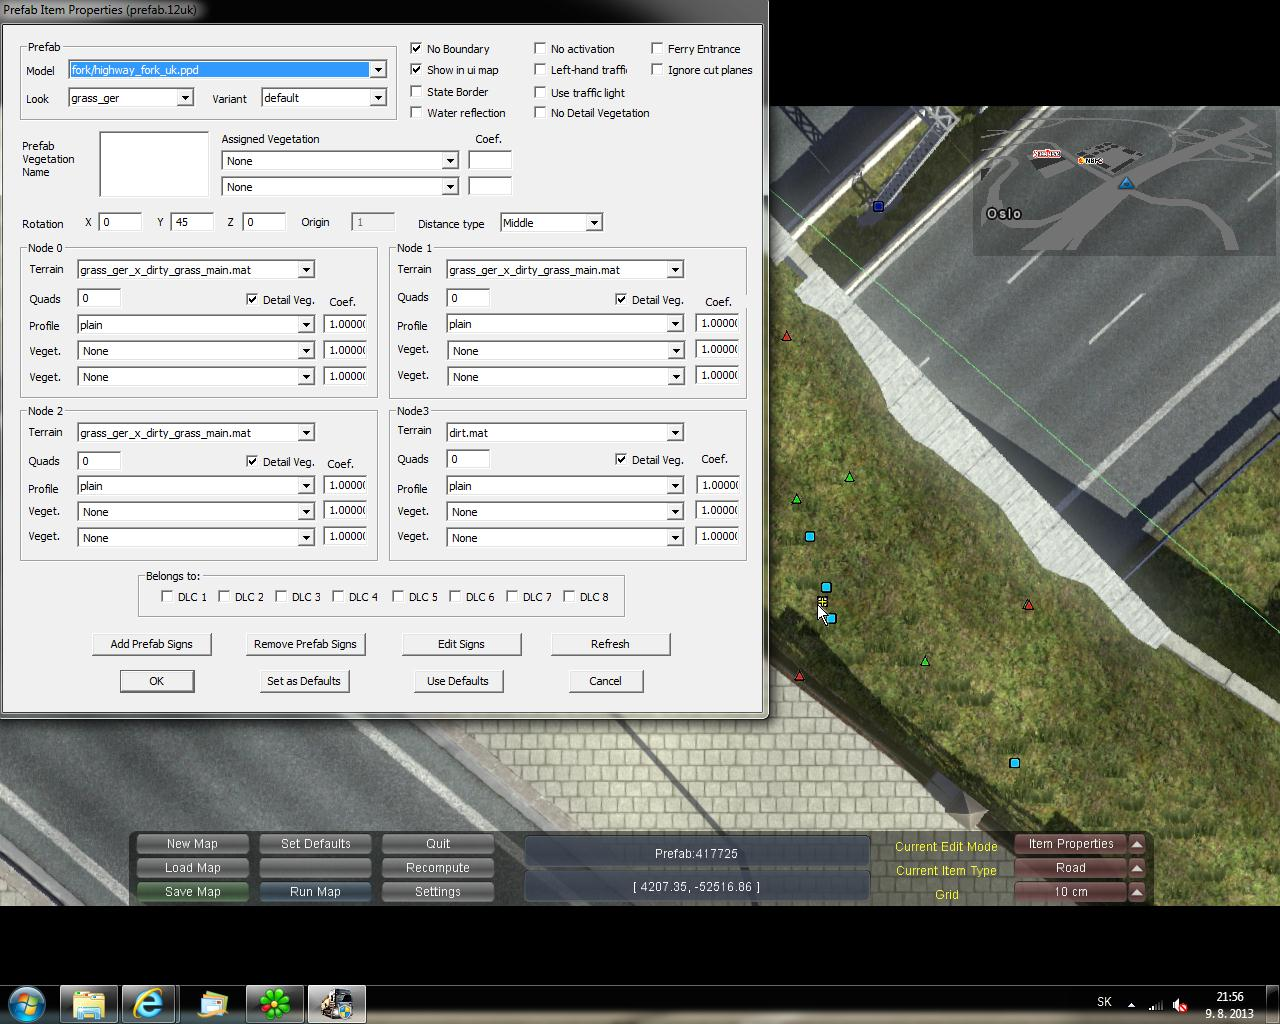 ets2 bugs promods 01 TZ map example Photo album by FLD